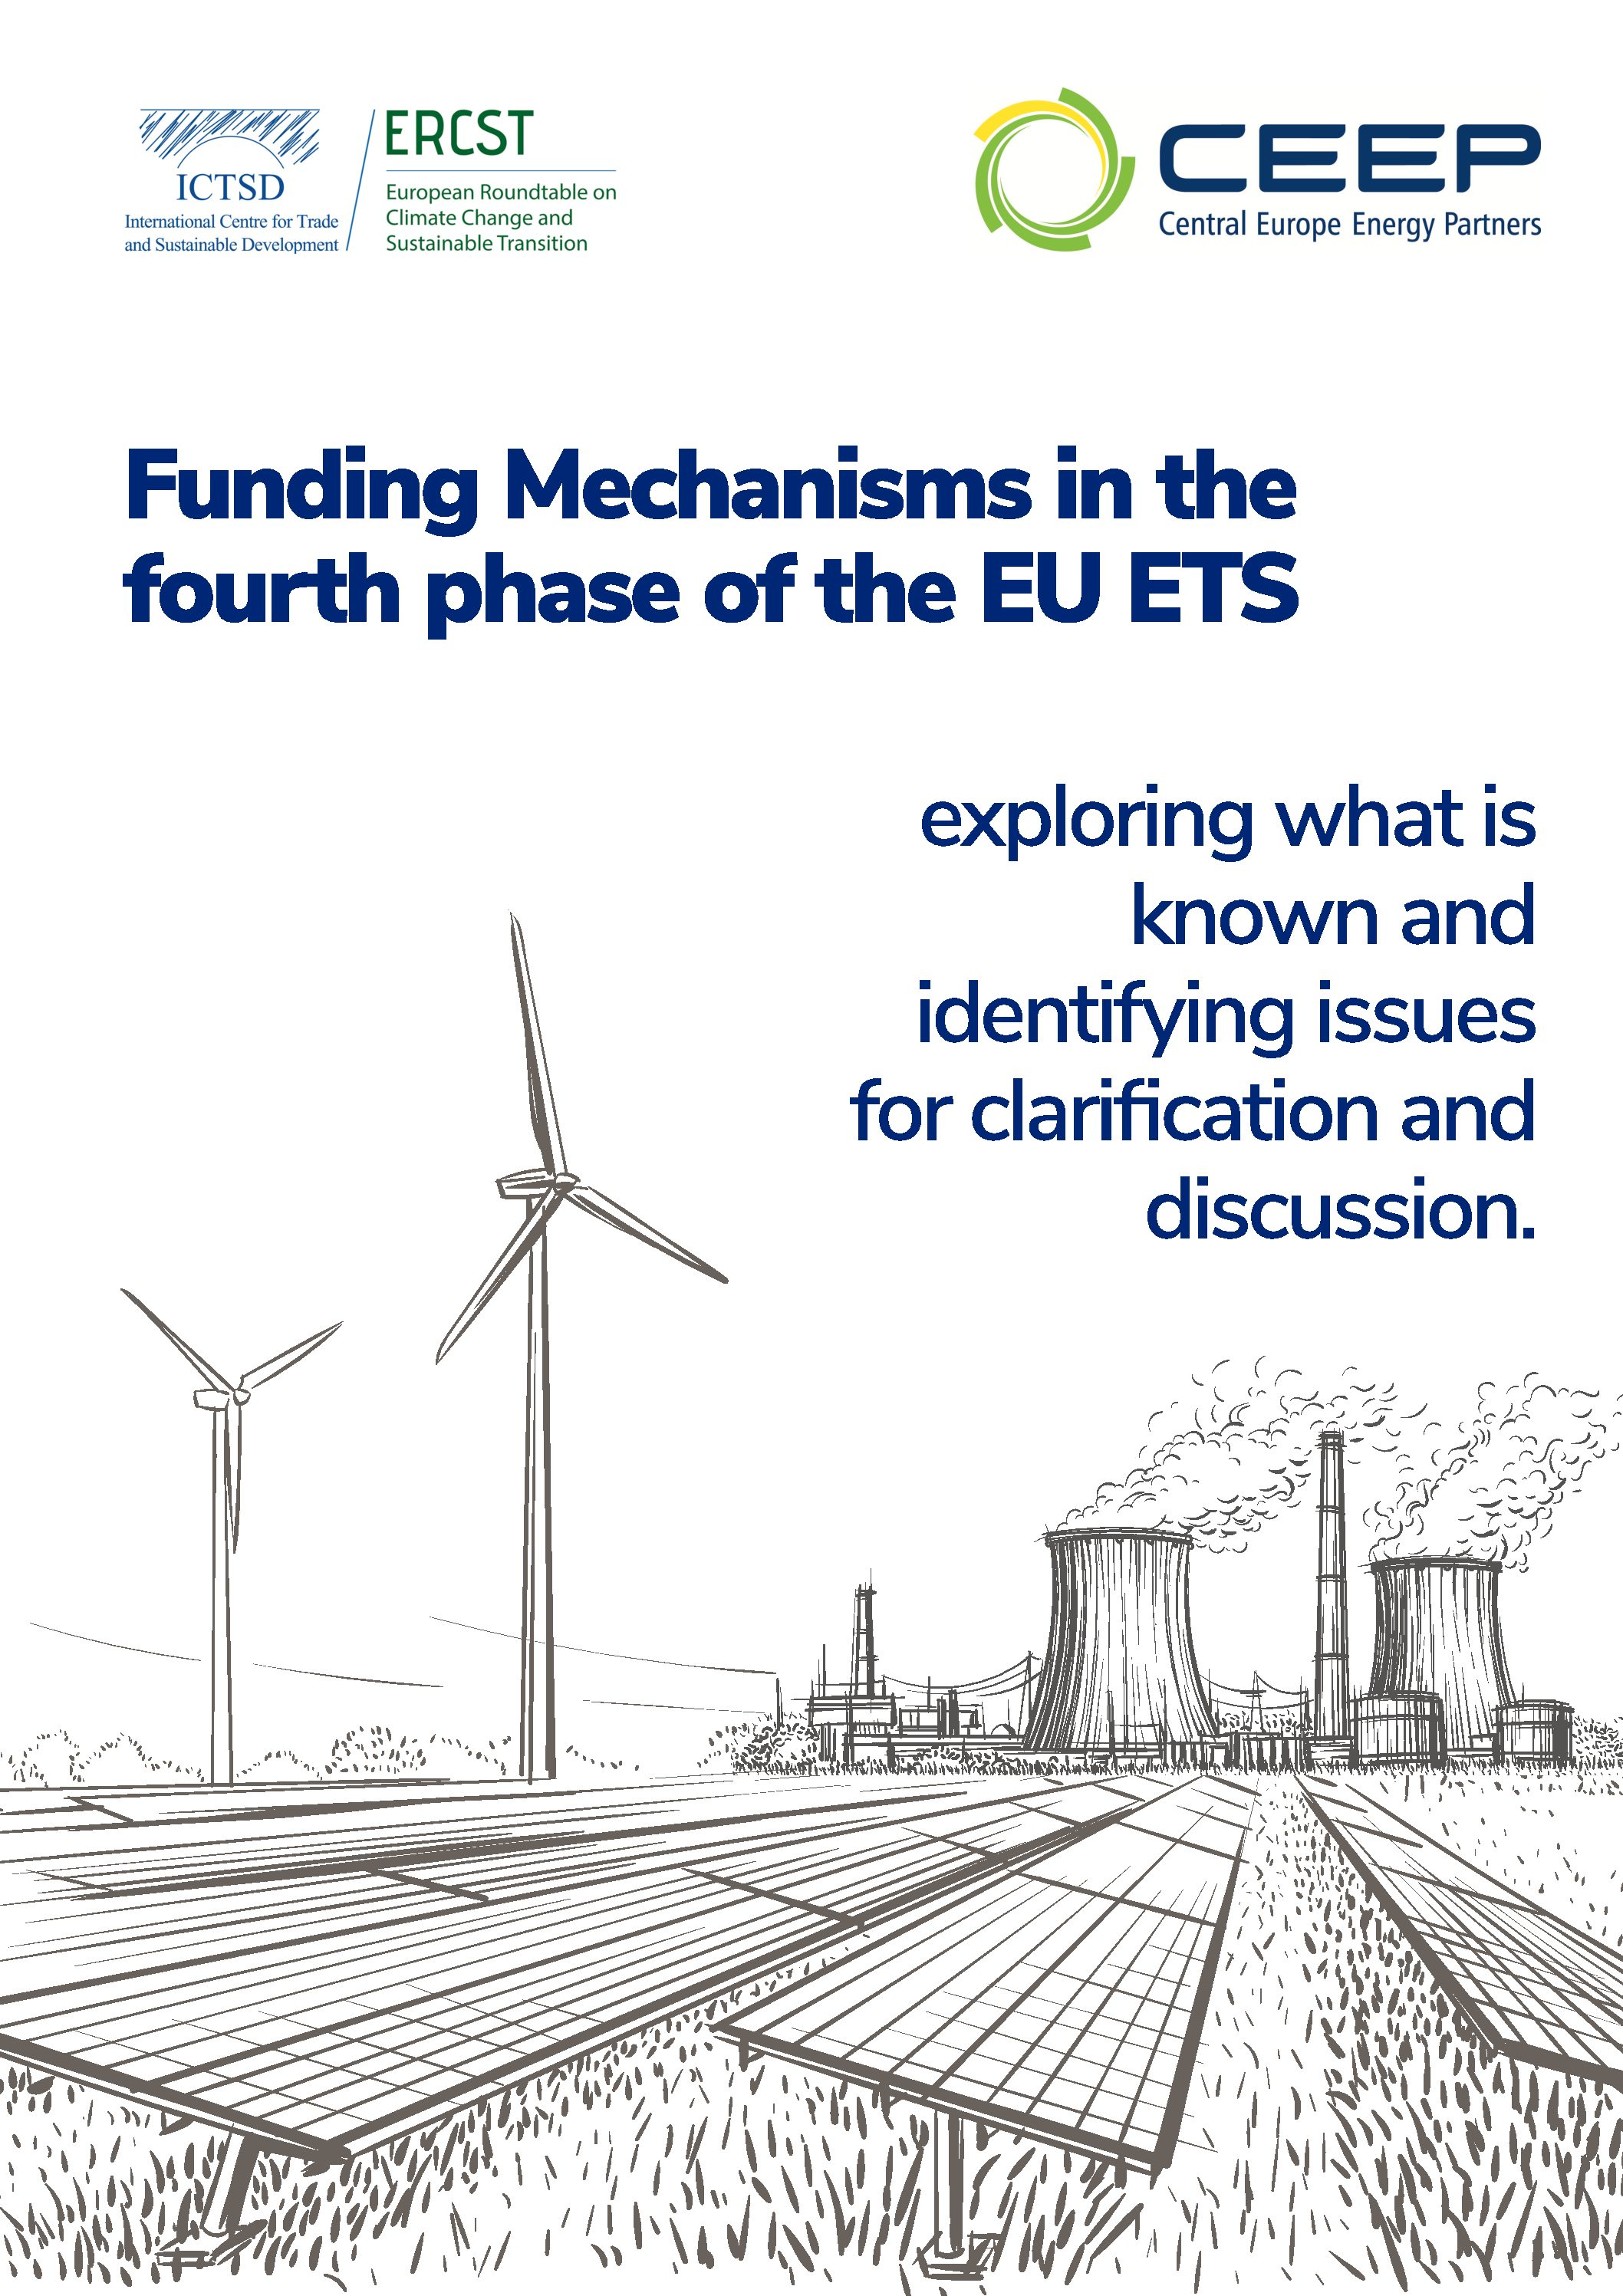 REPORT: Funding Mechanisms in the fourth phase of the EU ETS, exploring what is known and identifying issues for clarification and discussion.